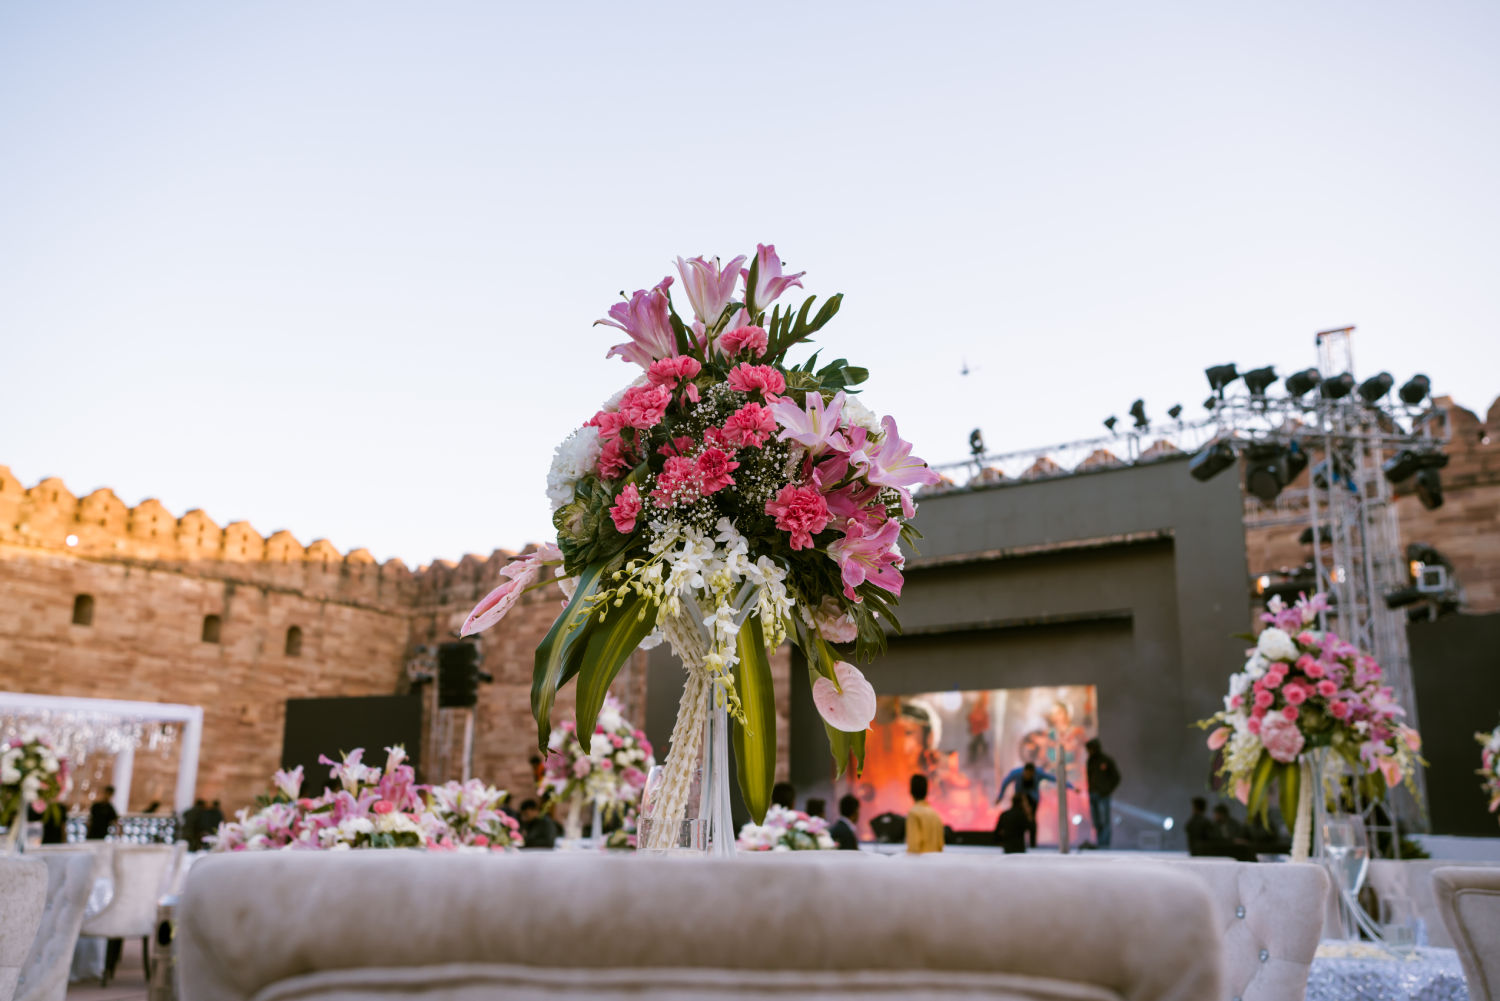 Where Can You Have A Fort Destination Wedding in India?